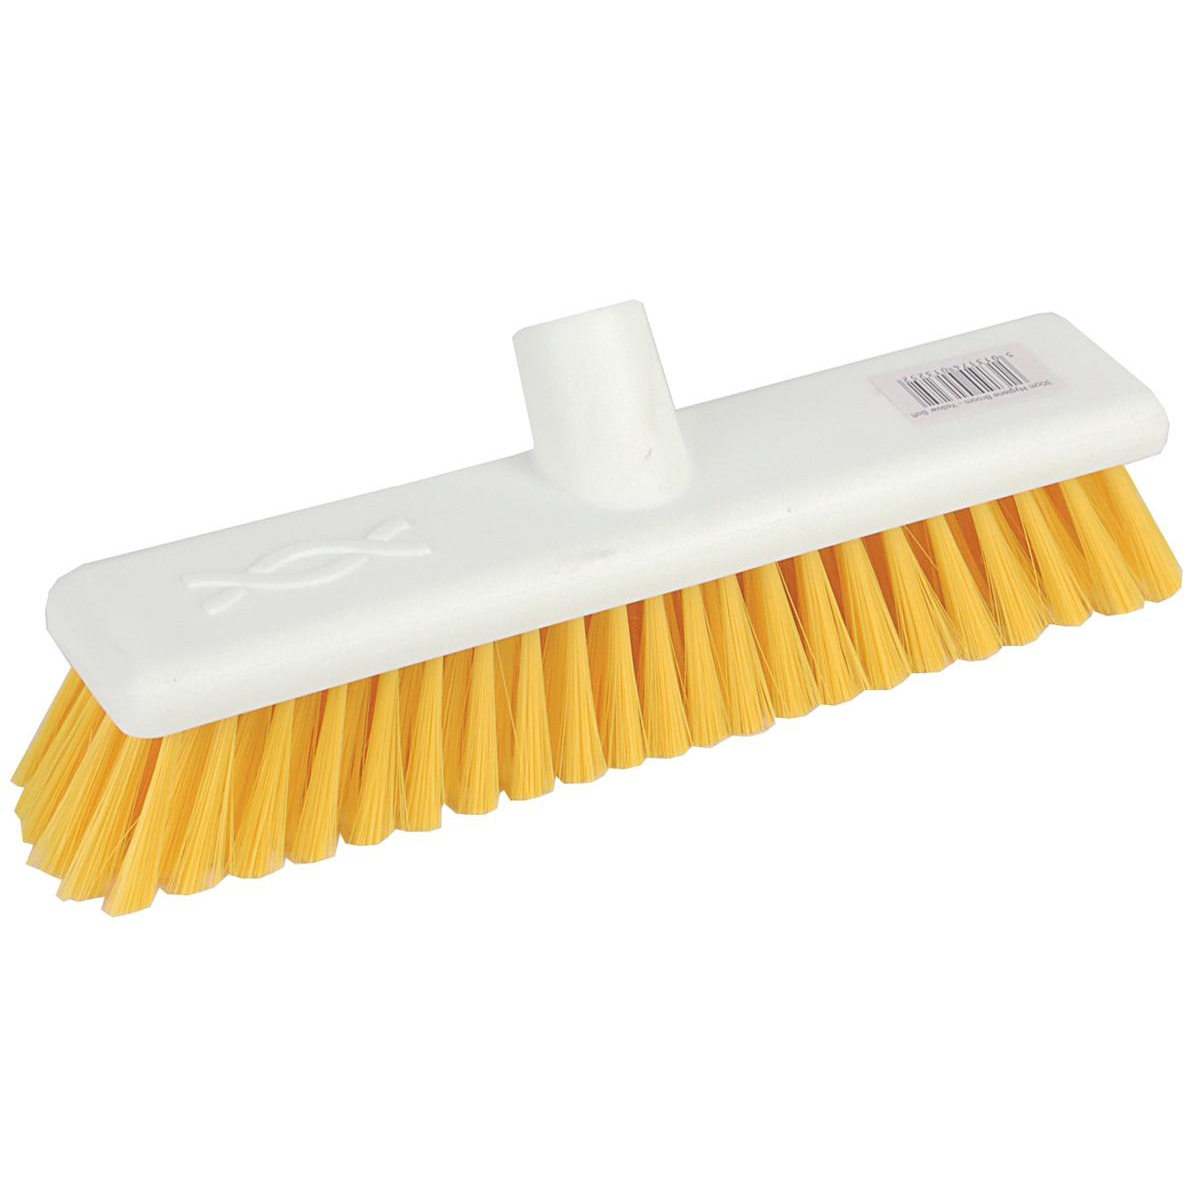 Robert Scott & Sons Abbey Hygiene Broom Head Soft Washable 12in Yellow Ref 102910YELLOW